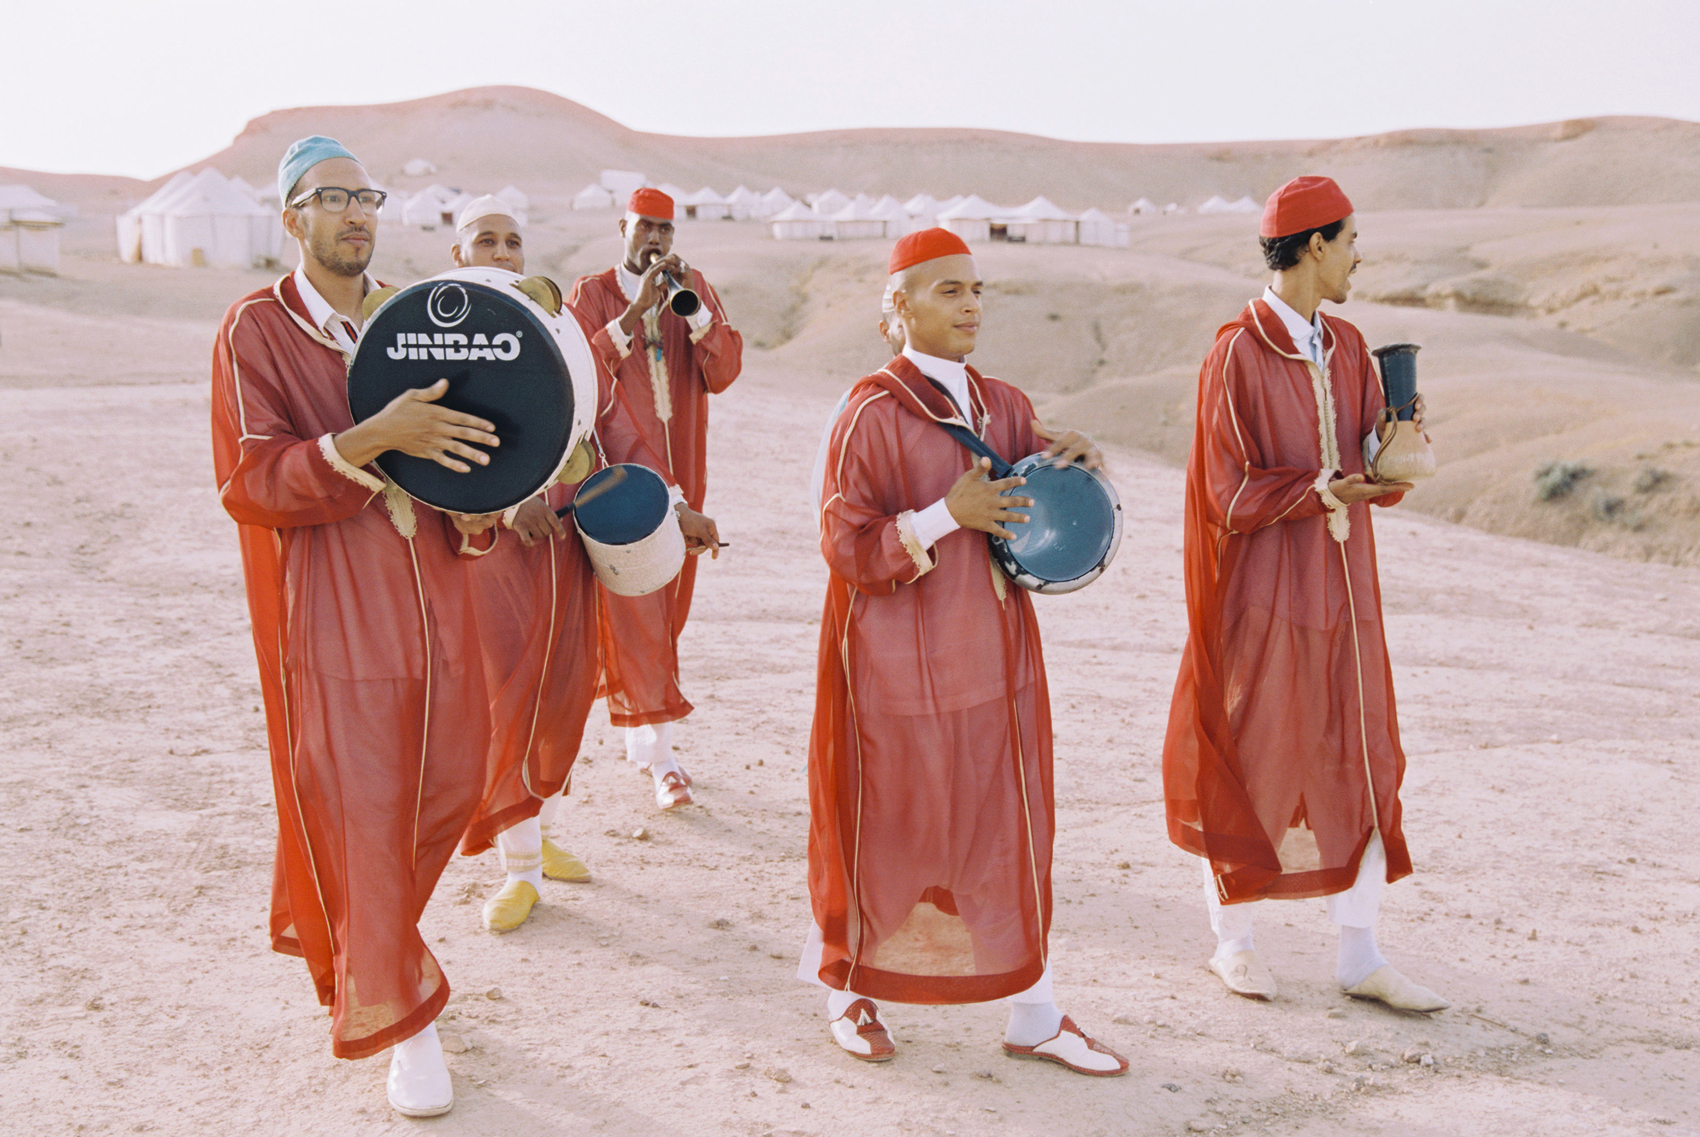 traditional live moroccan band wearing red and white attire